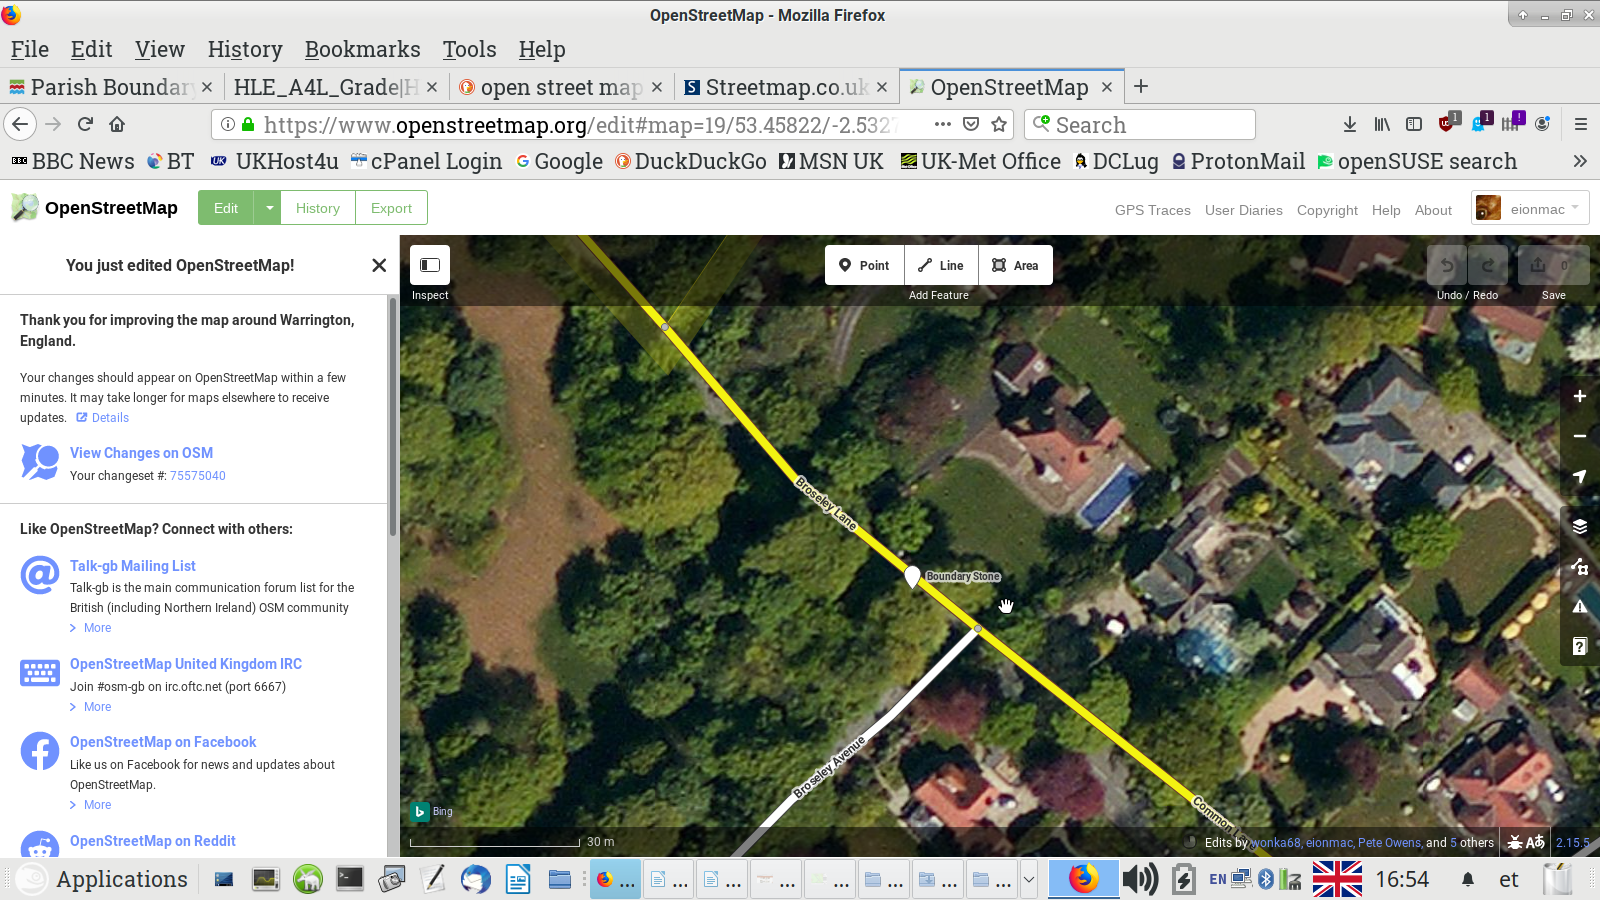 OpenStreet Map edited for boundary stone by EM Screenshot 2019 10 11 16 54 23